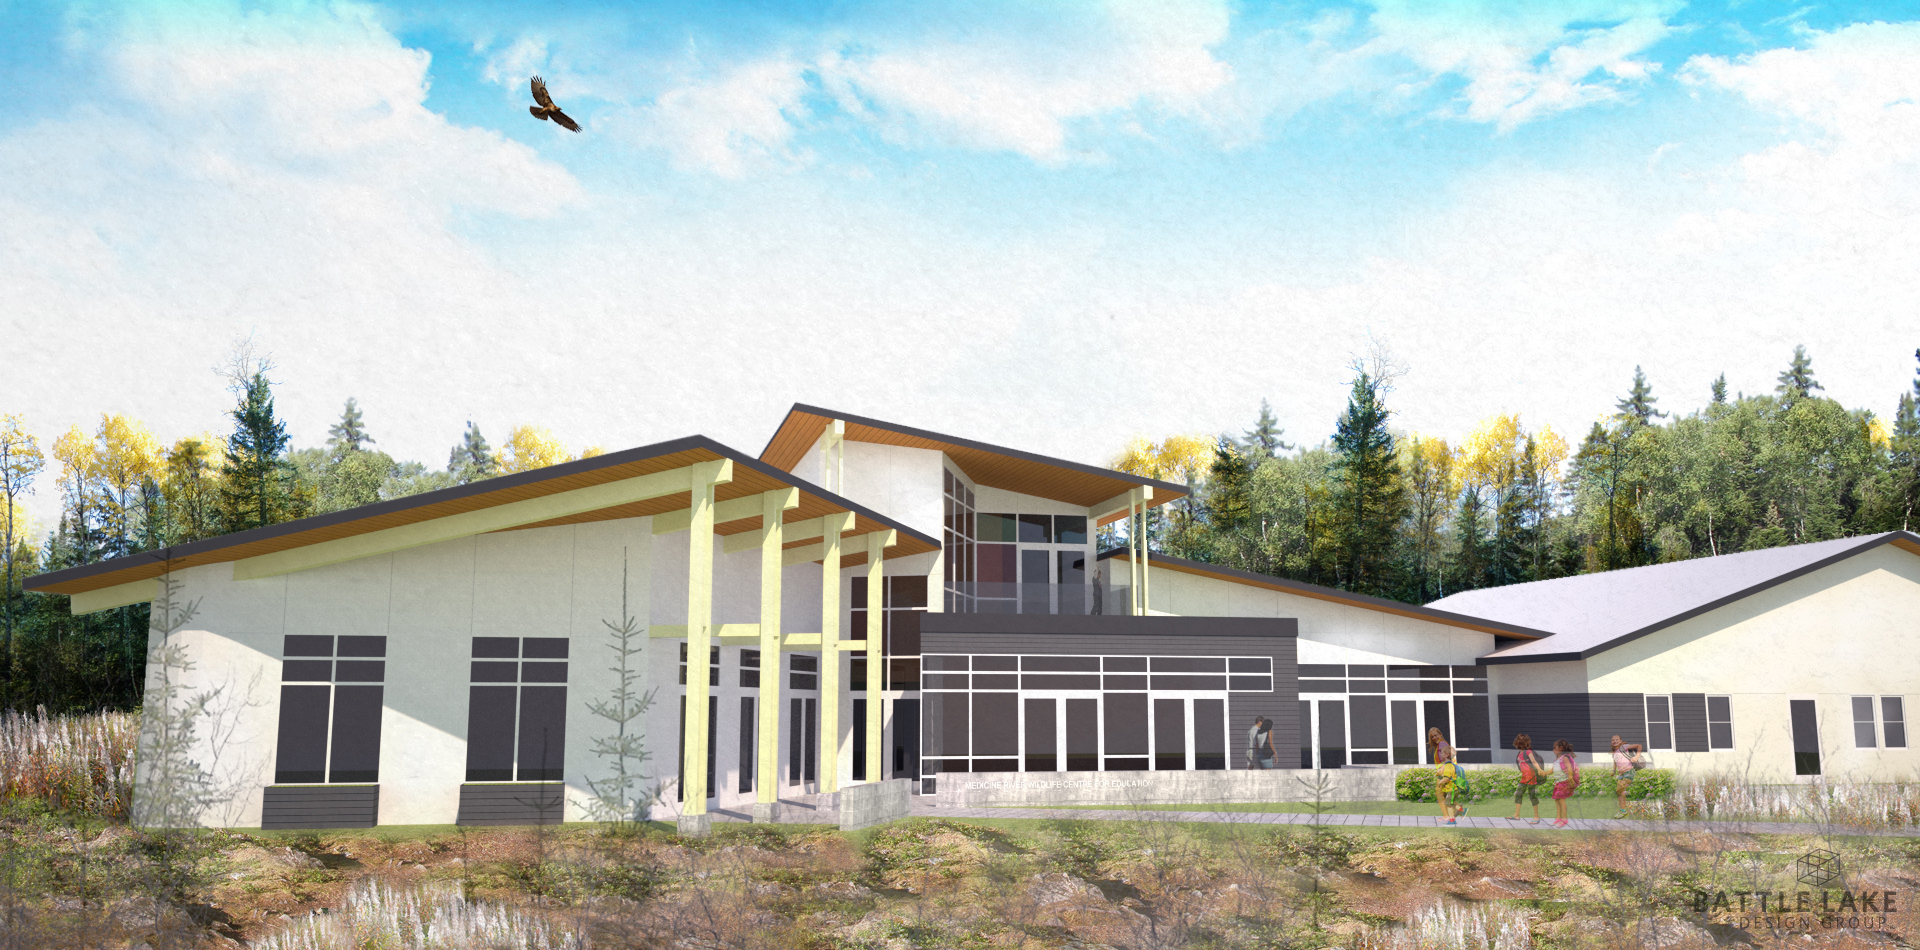 Medicine River Wildlife Centre (Proposed)